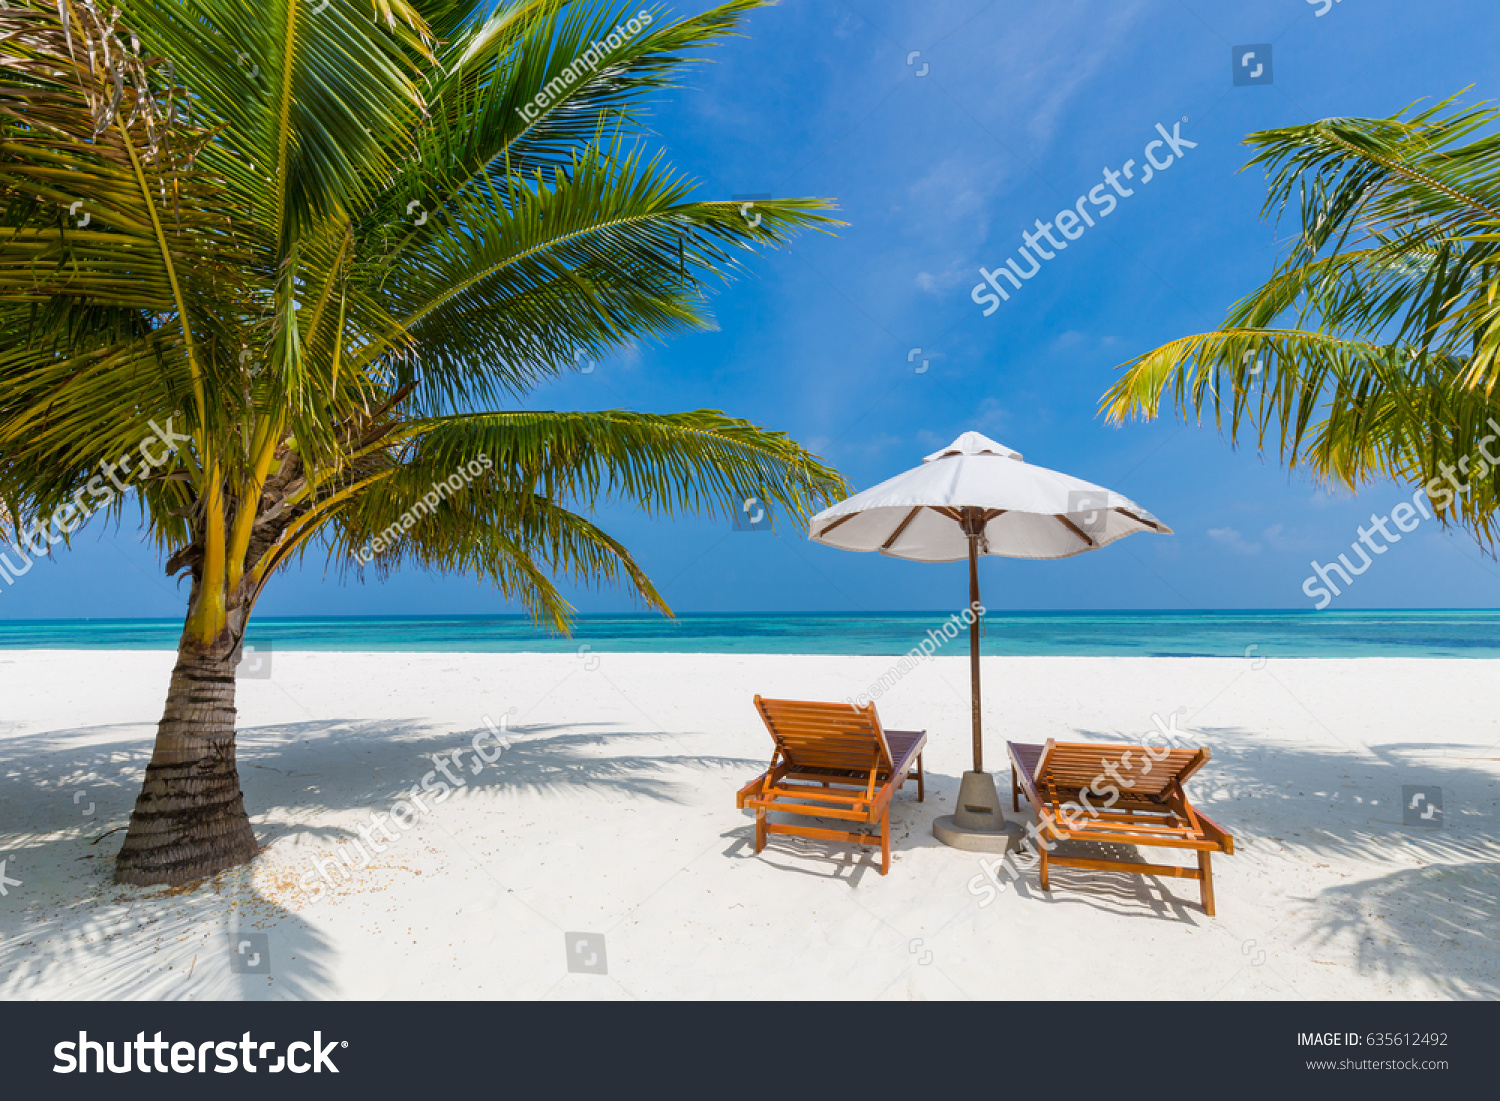 Photo De Stock De Vacation Holidays Background Wallpaper Two Deck